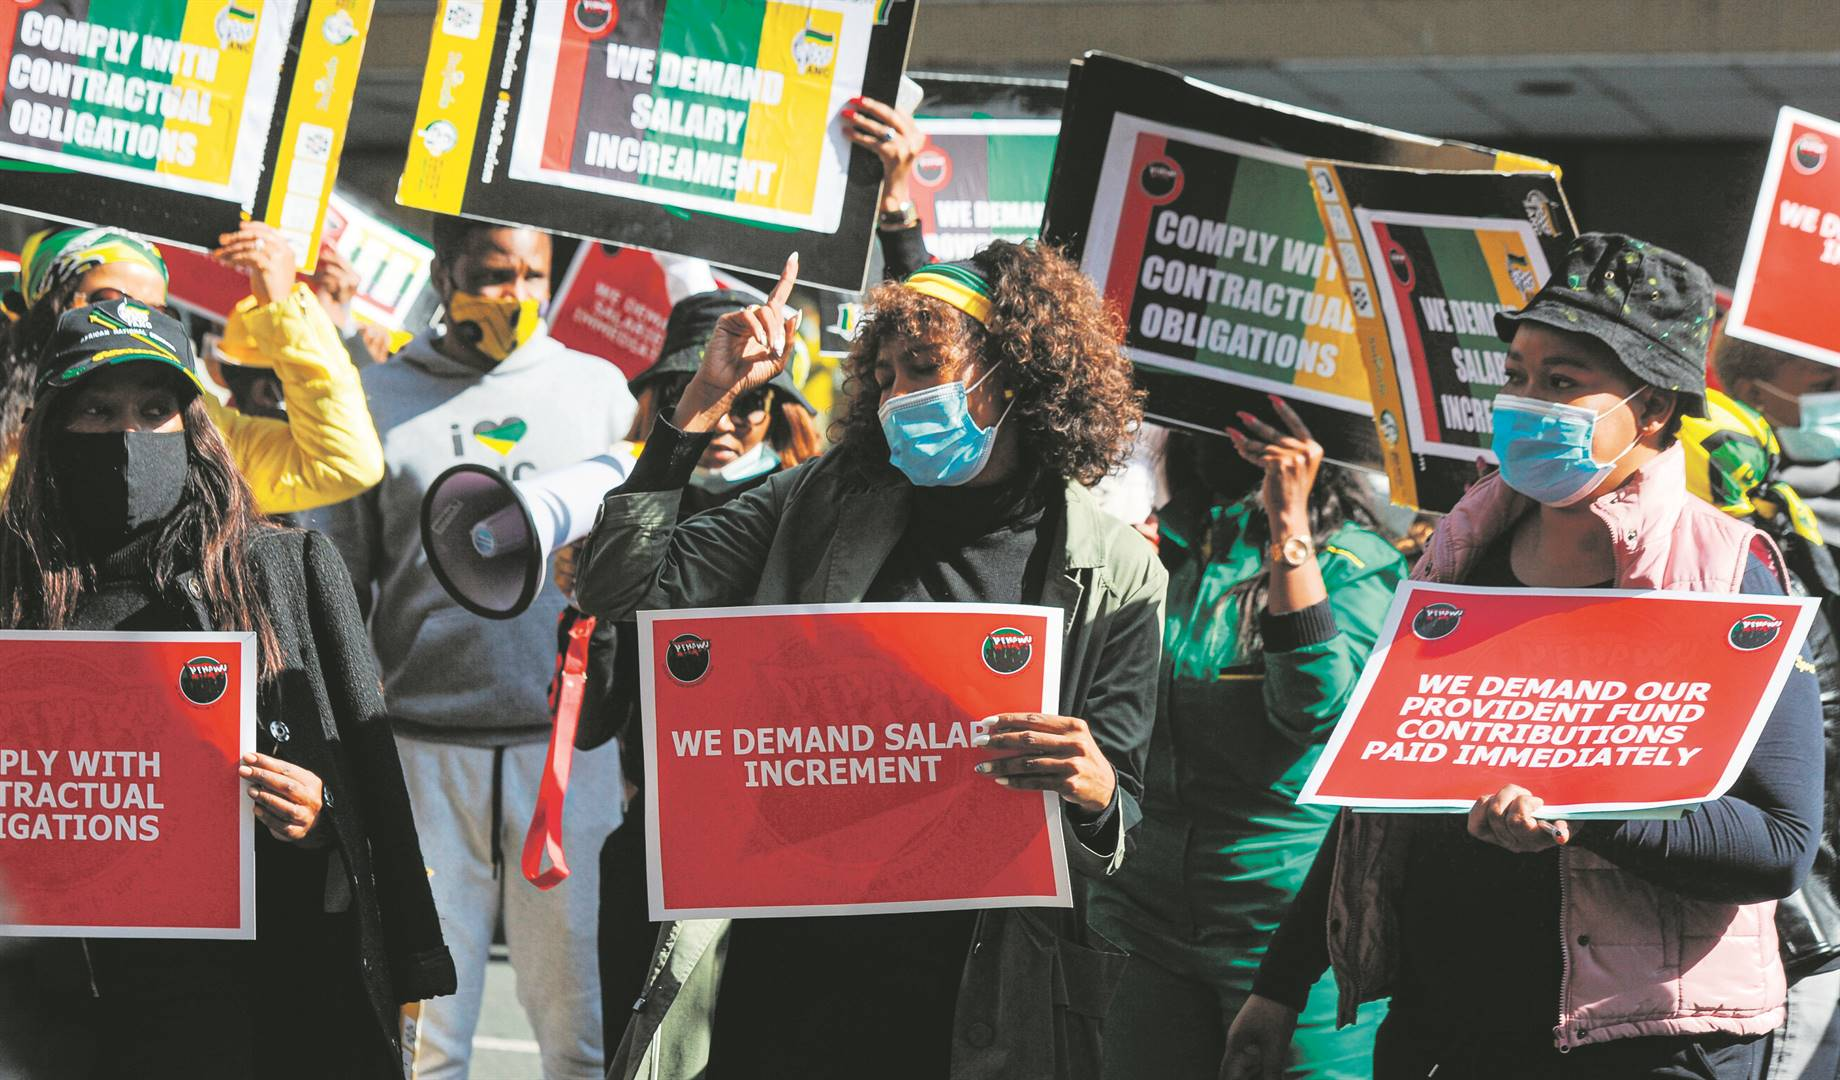 ANC staffers protest outside Luthuli House in Johannesburg this week over nonpayment of salaries, as well as the fact that the party has failed to pay provident fund contributions. Photo: Rosetta Msimango